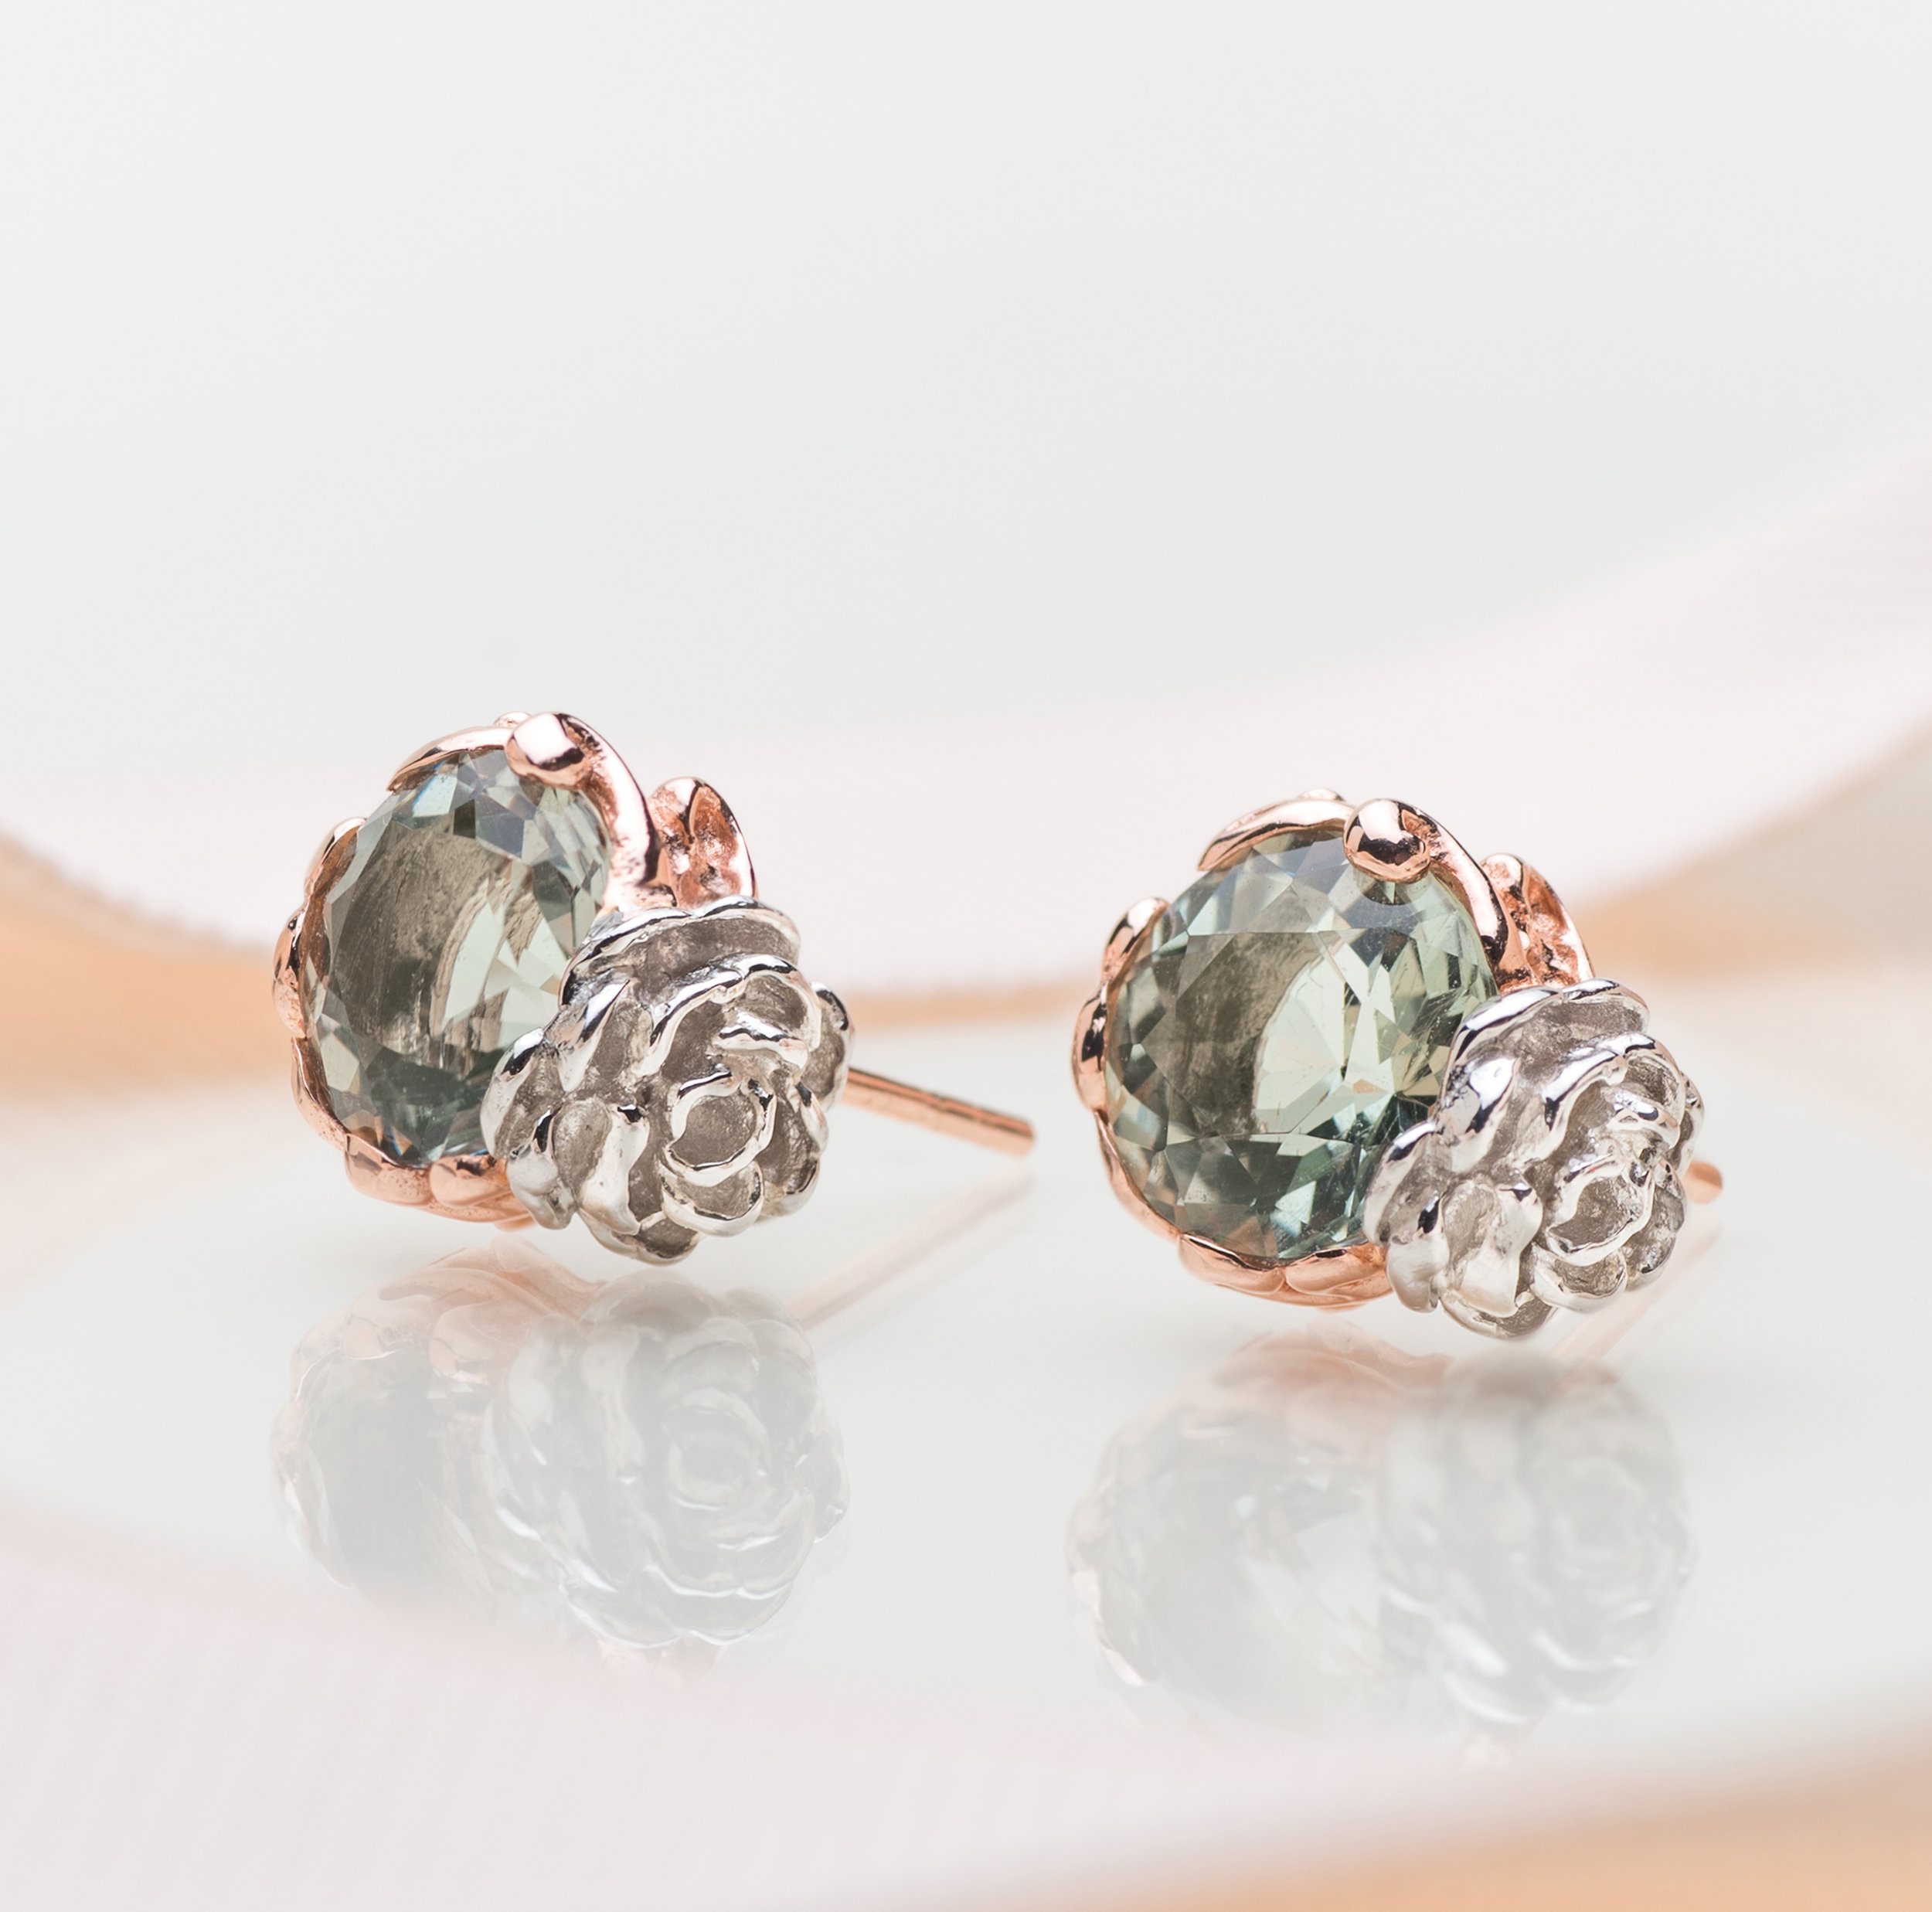 Green Amethyst: For Fortune - Green Amethyst is most popularly known as the stones of good fortune and luck. Whilst the soft soothing green hue is often enough reason to bring a smile to your face – the added symbolism of prosperity should only widen your grin.Don a pair of Flower Jade Studs in Green Amethyst and who knows - perhaps you'll find the winds of fortune swaying in your favour. It's the reinvented modern women's take on the traditional lucky penny or rabbit's foot. After all, there's really no such thing as too much luck.